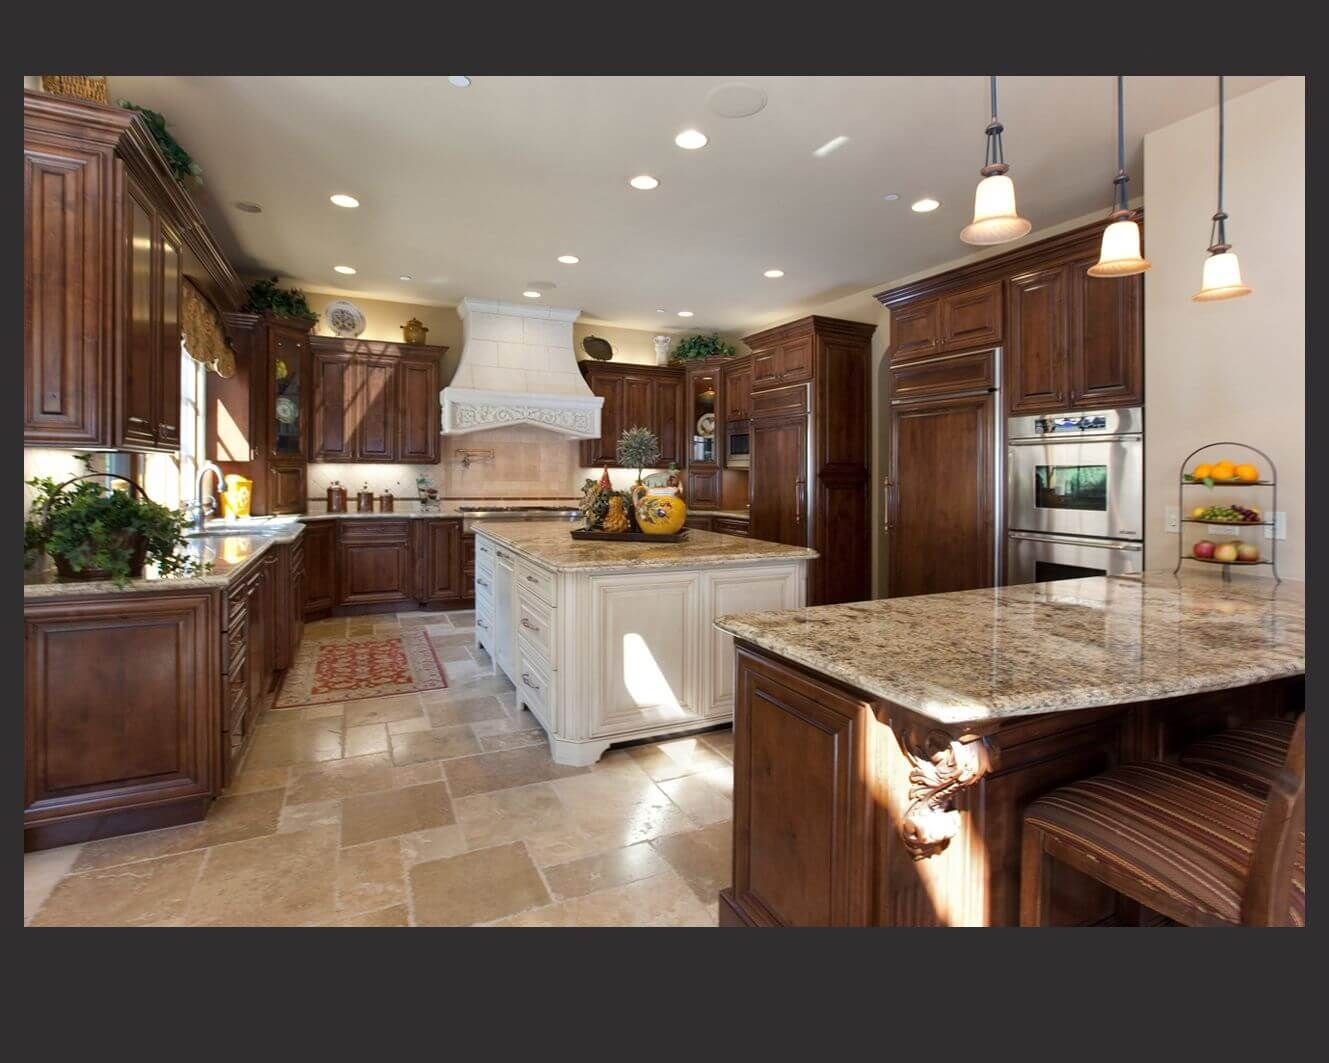 40 Magnicent Kitchen Designs with Dark Cabinets Kaapit. 1 Bedroom Apartment Decorating Ideas. Rental Apartment Smart Decorating Ideas Youtube Apartment. Studio Bachelor Bachelorette Apartment House Home